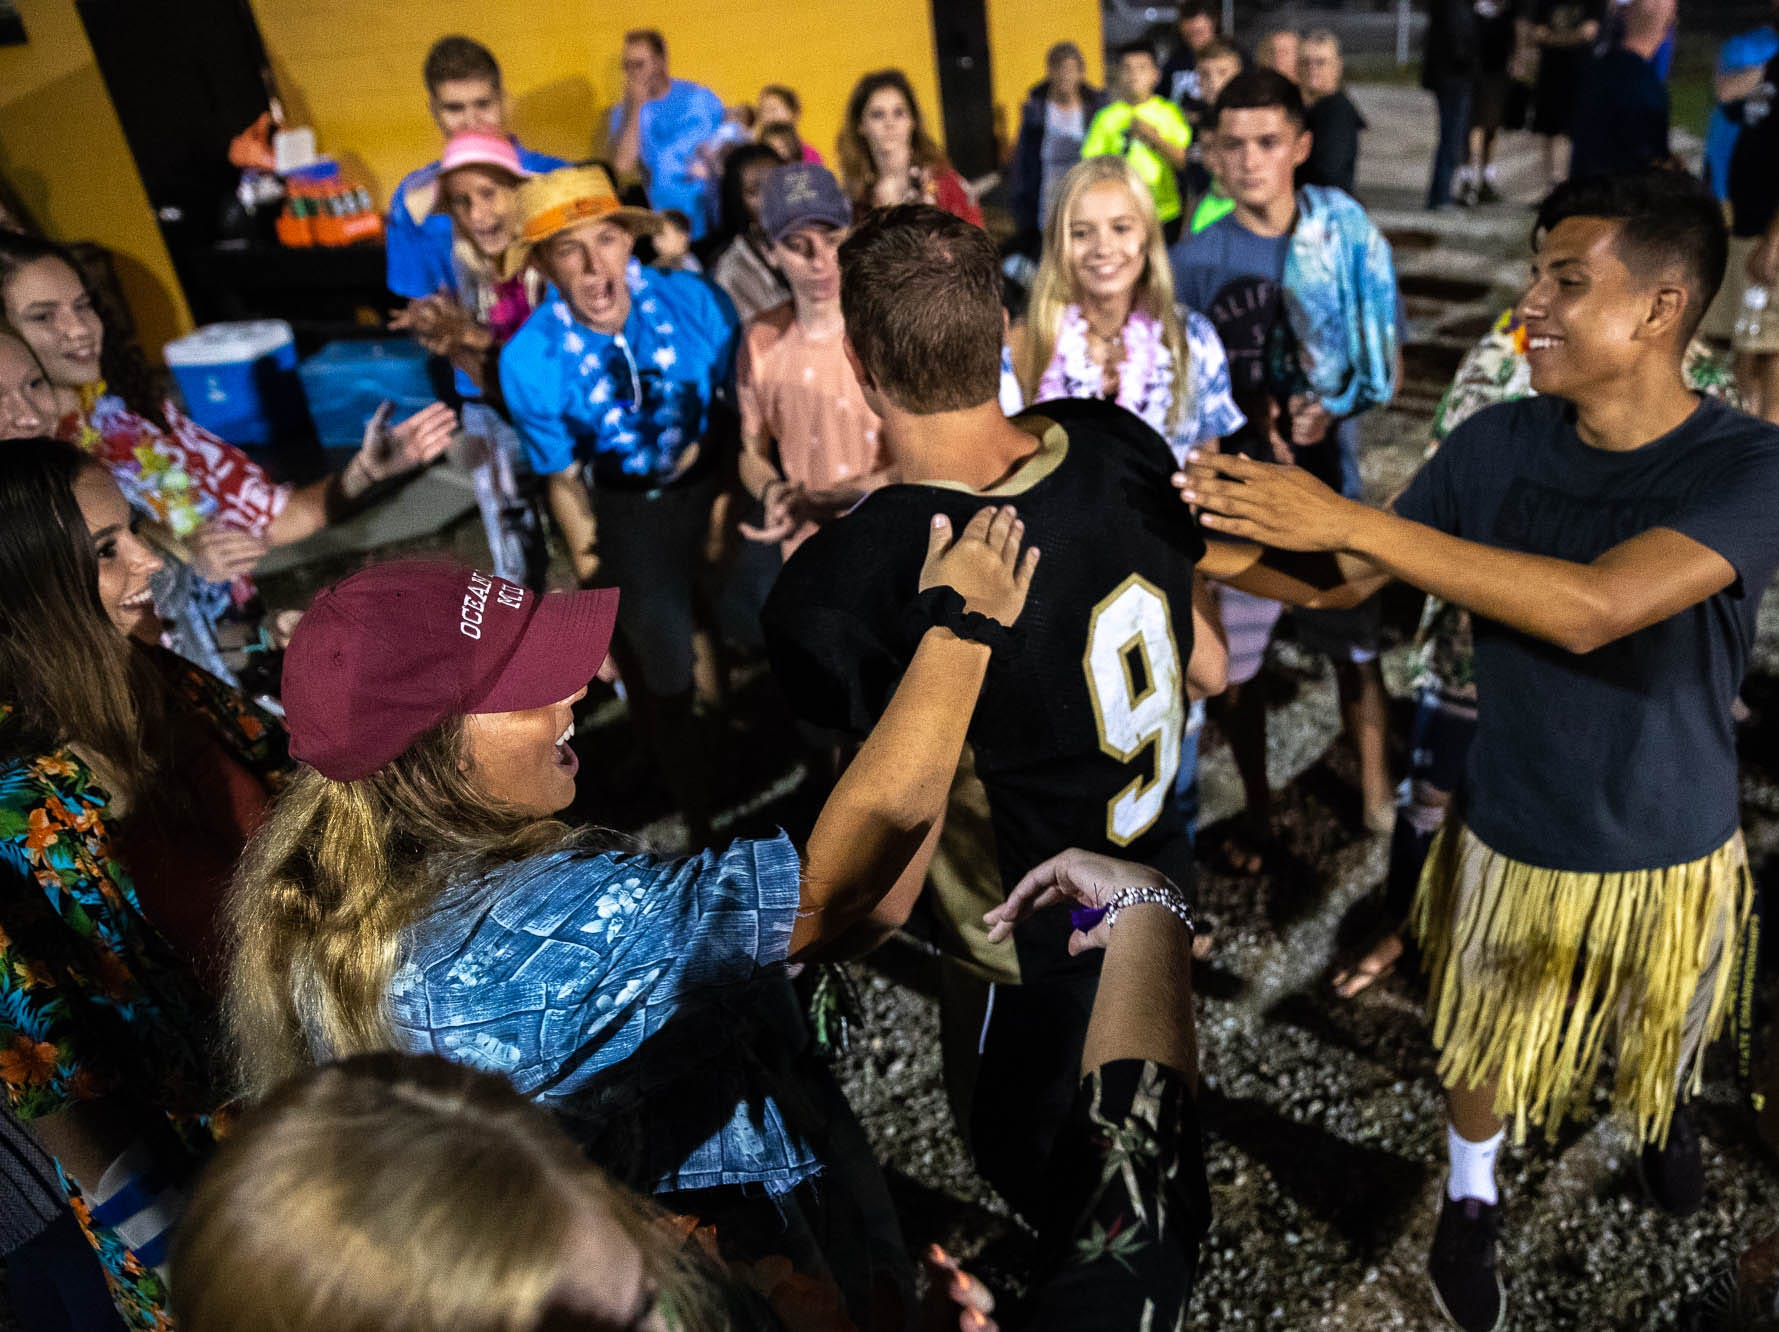 Members of the Delone student section cheer on Delone's Logan Brown (9) after winning a game against York Suburban, Friday, Aug. 31, 2018, at Delone Catholic High School in McSherrystown. Delone beat York Suburban 62-0.